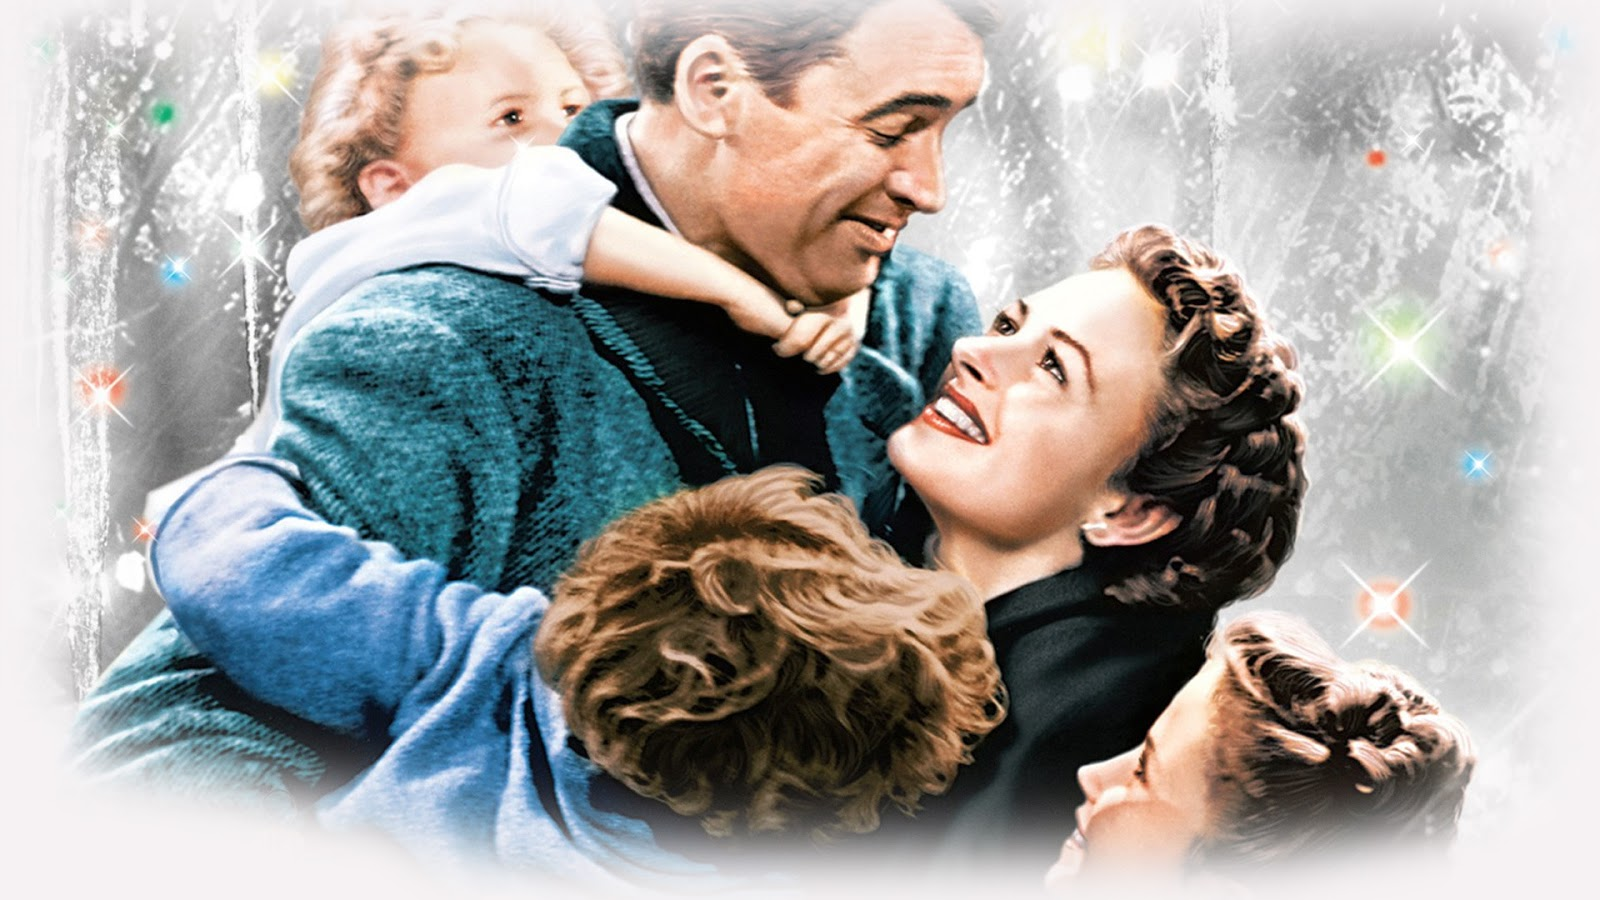 Parenting With a Smile: My Favorite Christmas Movies